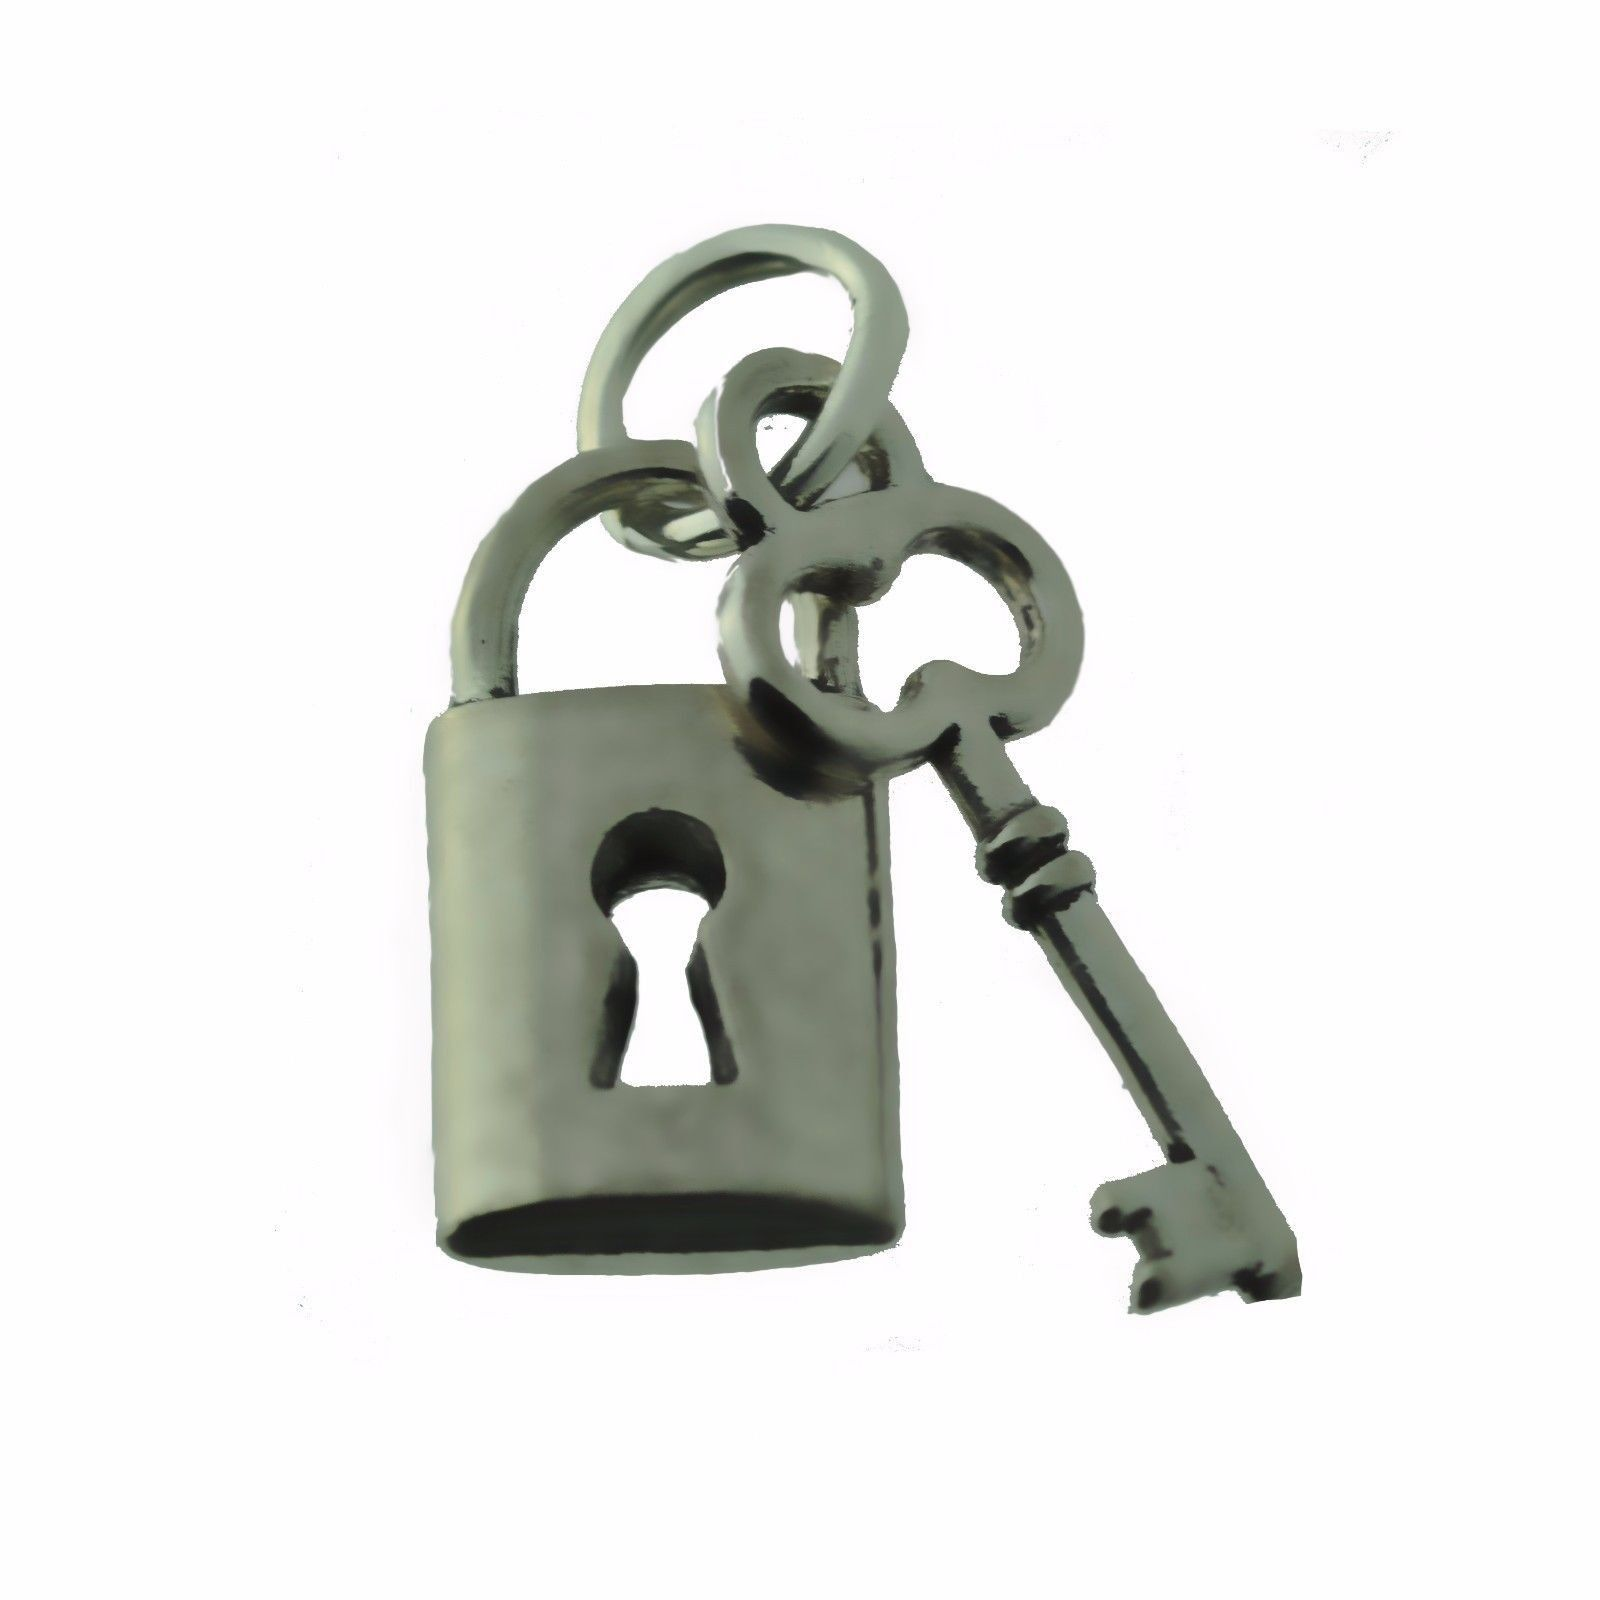 NICE Sterling Silver 925 Charm Lock and Key Split give to someone you love Jewel